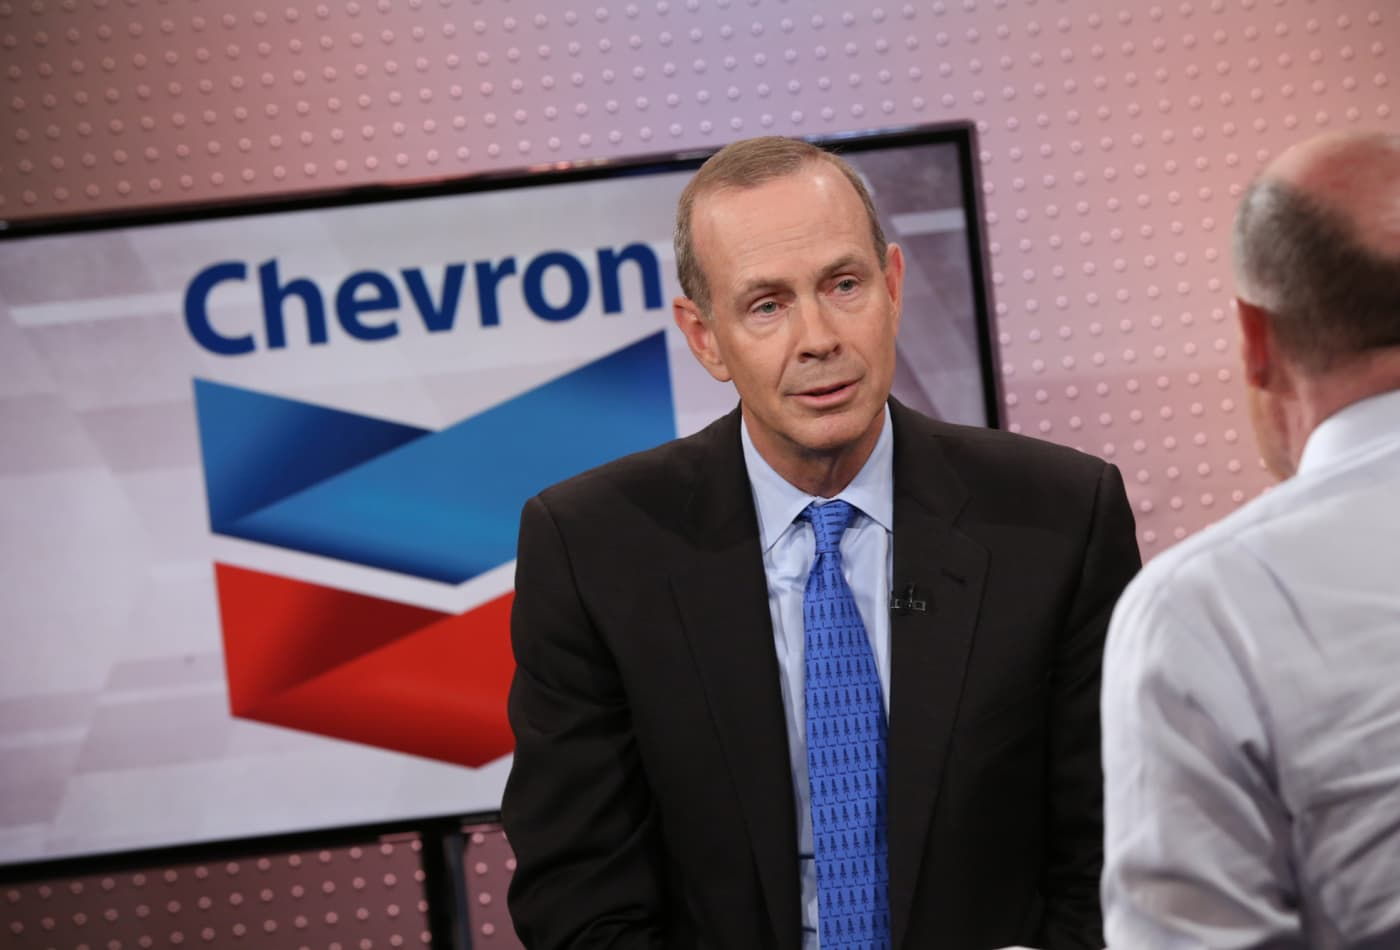 Chevron CEO says the dividend is the company's No. 1 priority and is 'very secure'